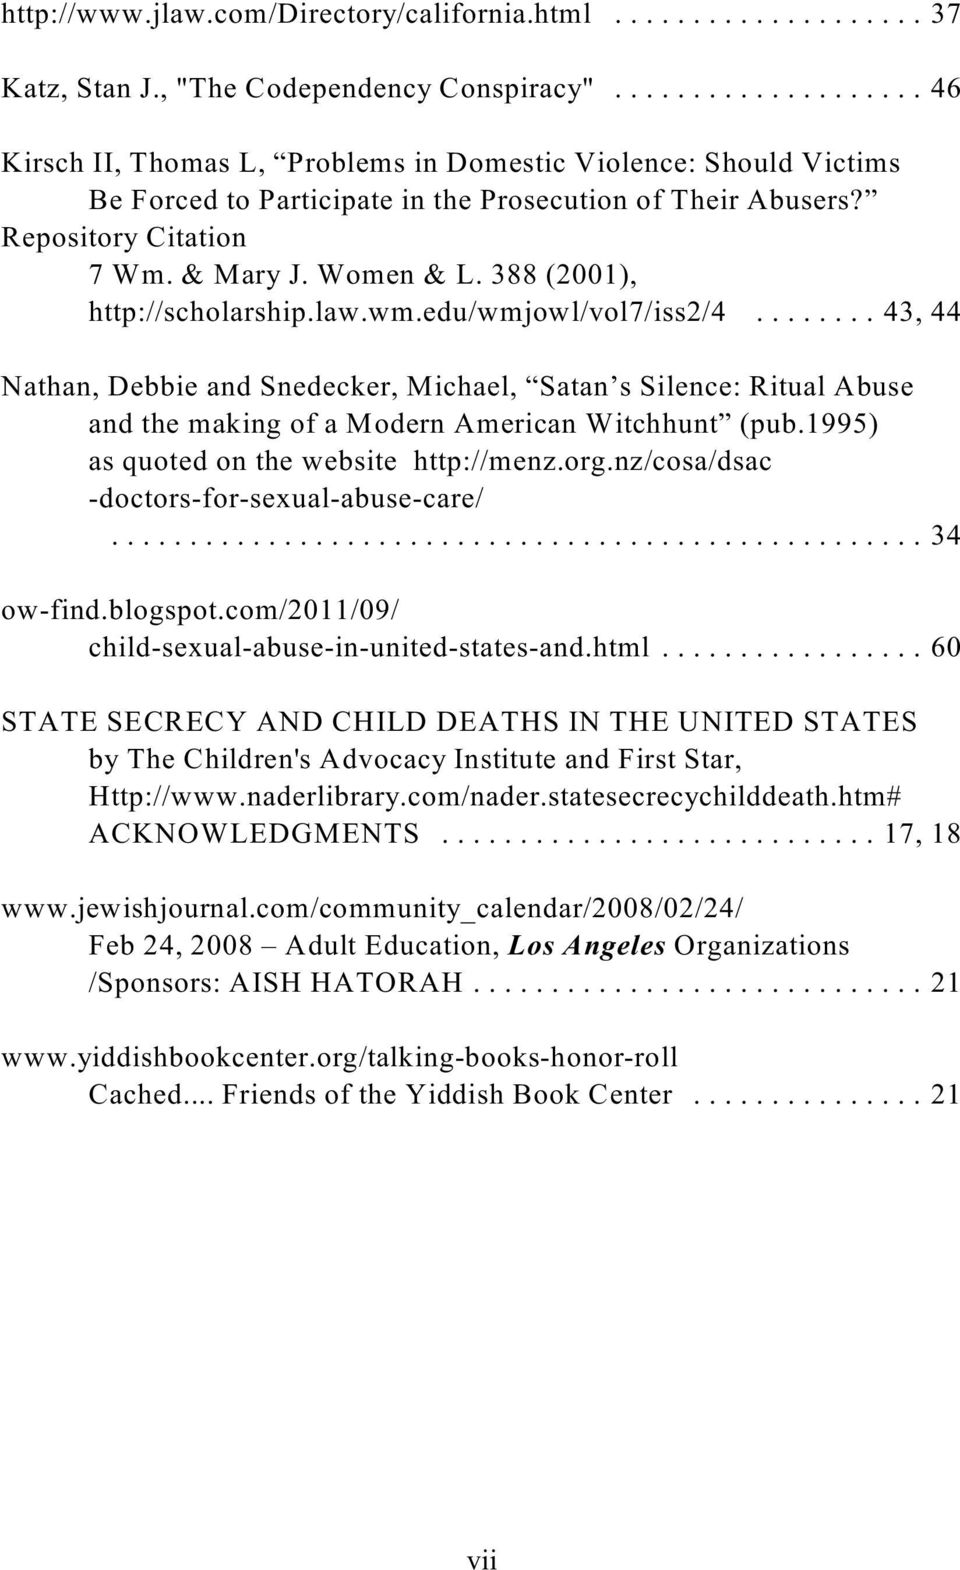 388 (2001), http://scholarship.law.wm.edu/wmjowl/vol7/iss2/4........ 43, 44 Nathan, Debbie and Snedecker, Michael, Satan s Silence: Ritual Abuse and the making of a Modern American Witchhunt (pub.